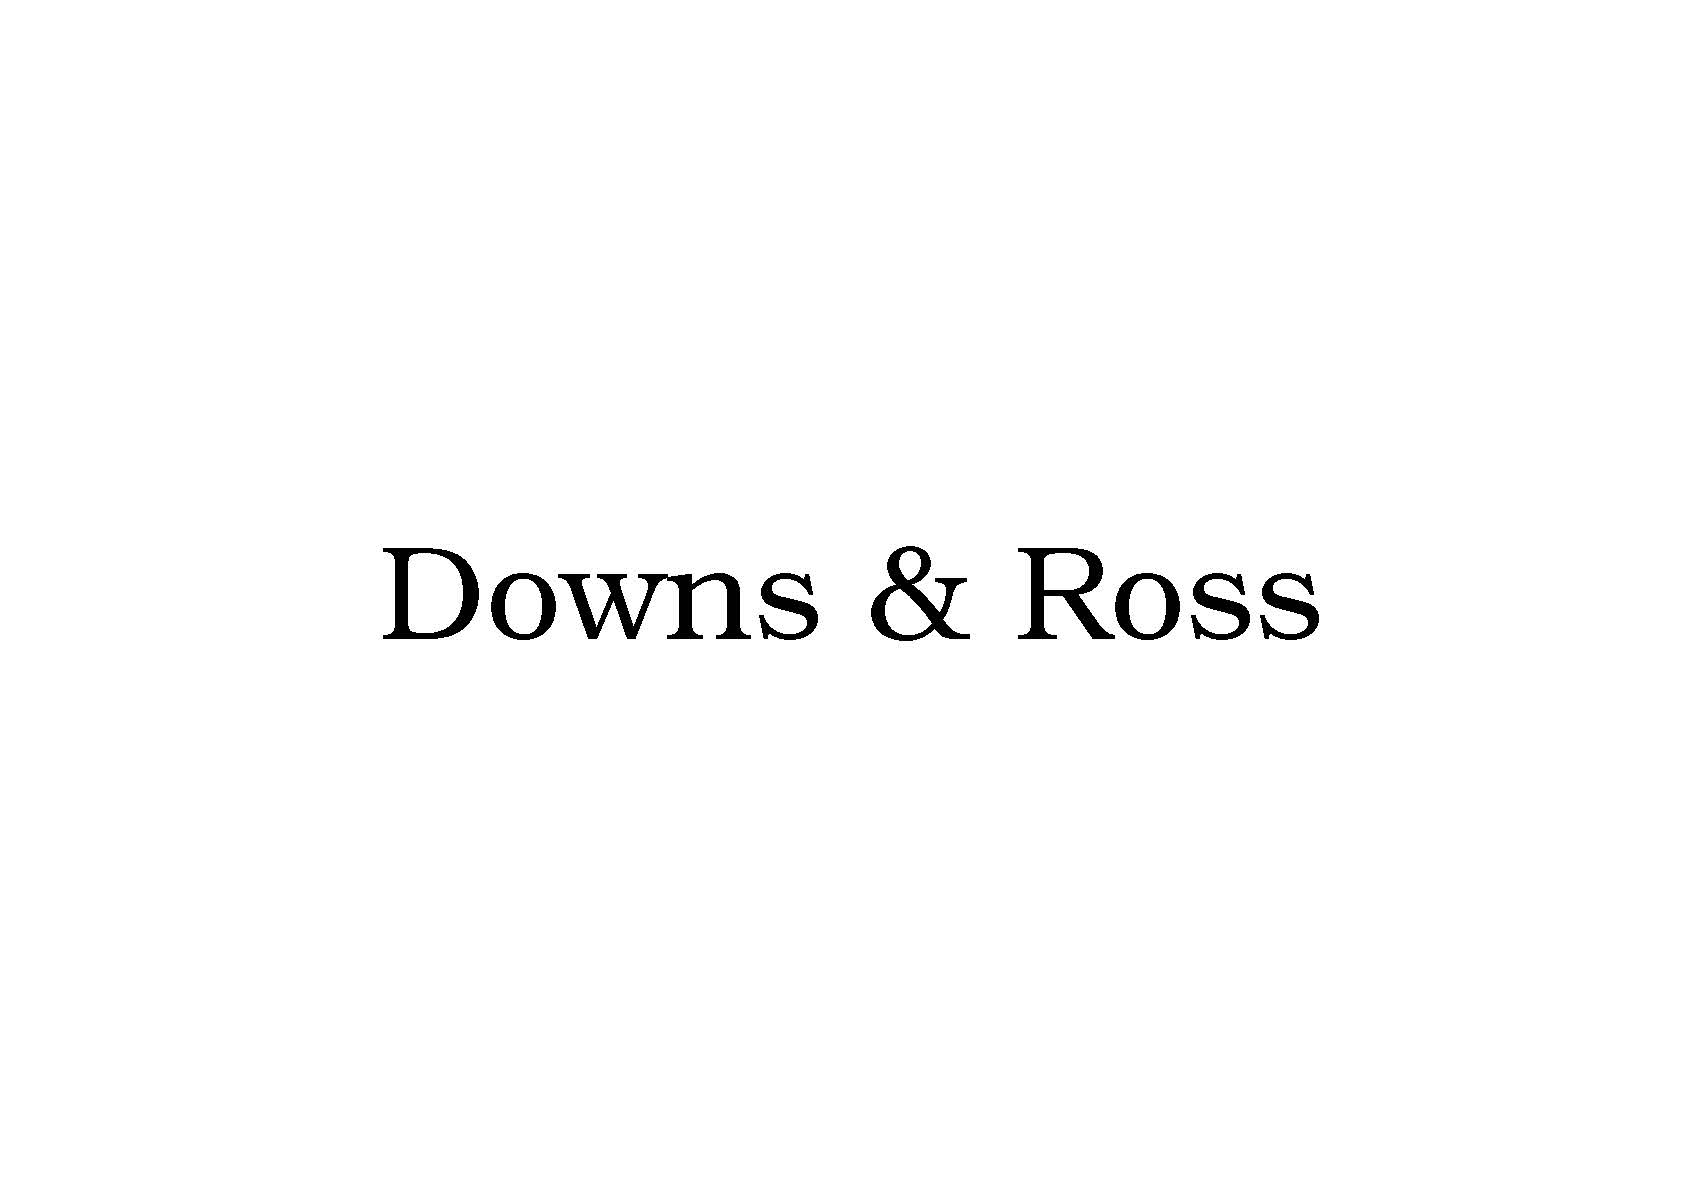 Downs & Ross